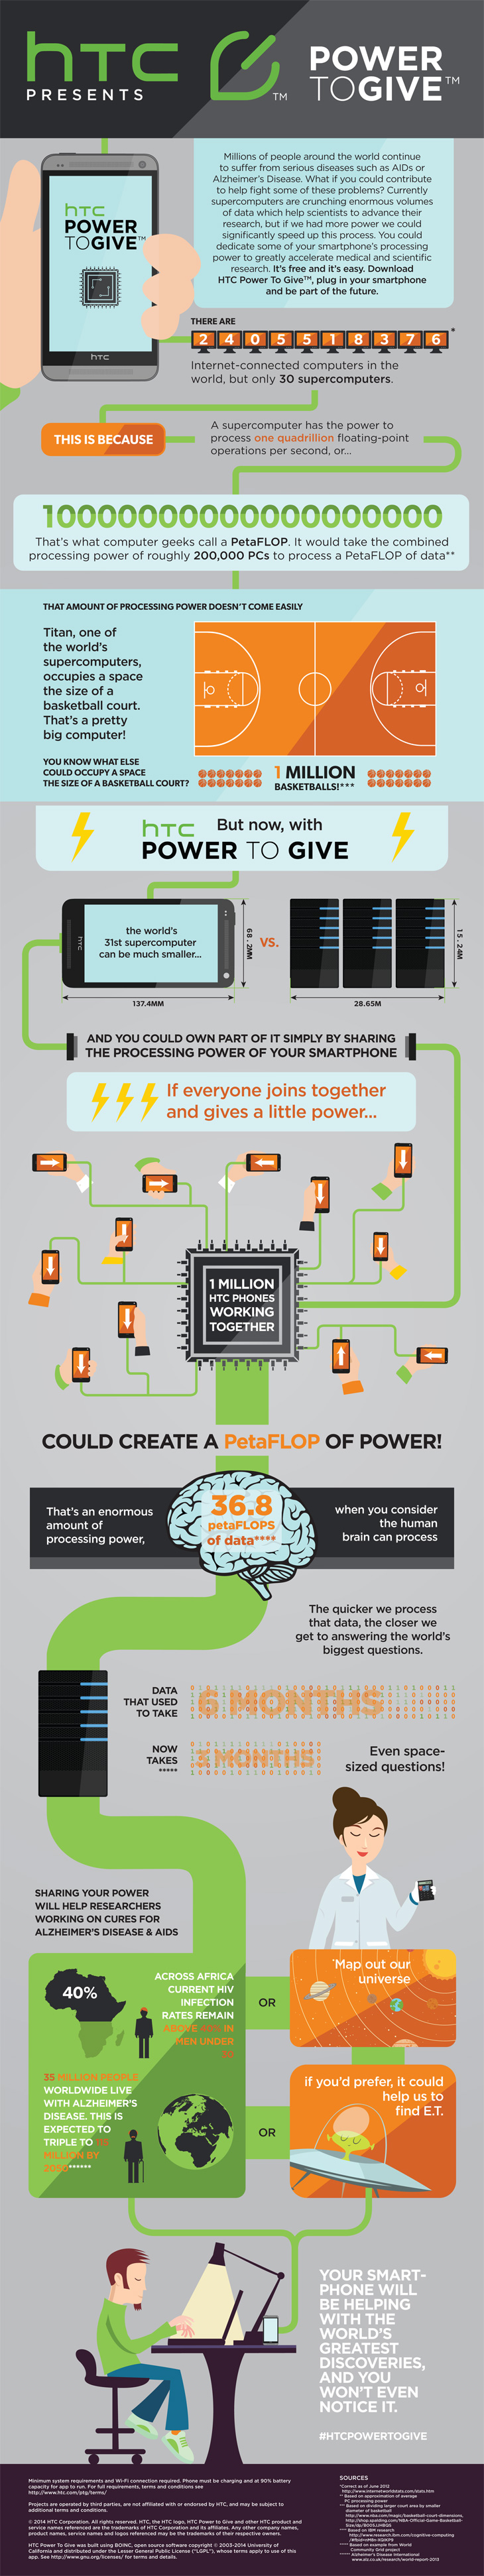 htc-power-to-give_infografik